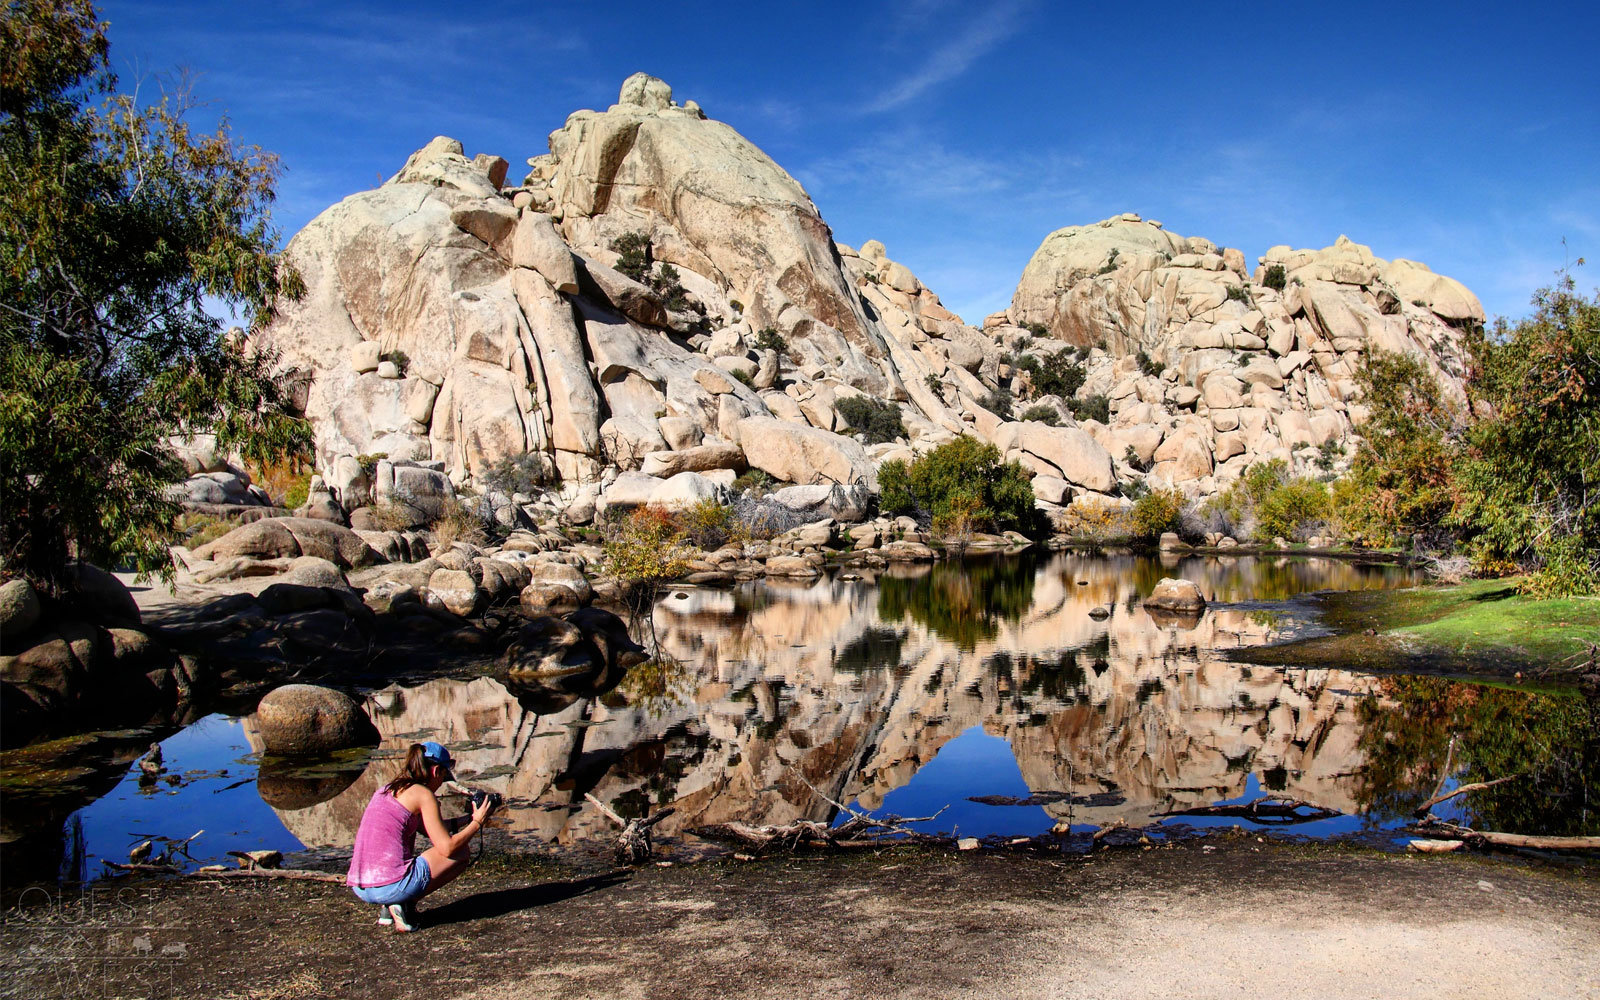 barker dam joshua tree national park